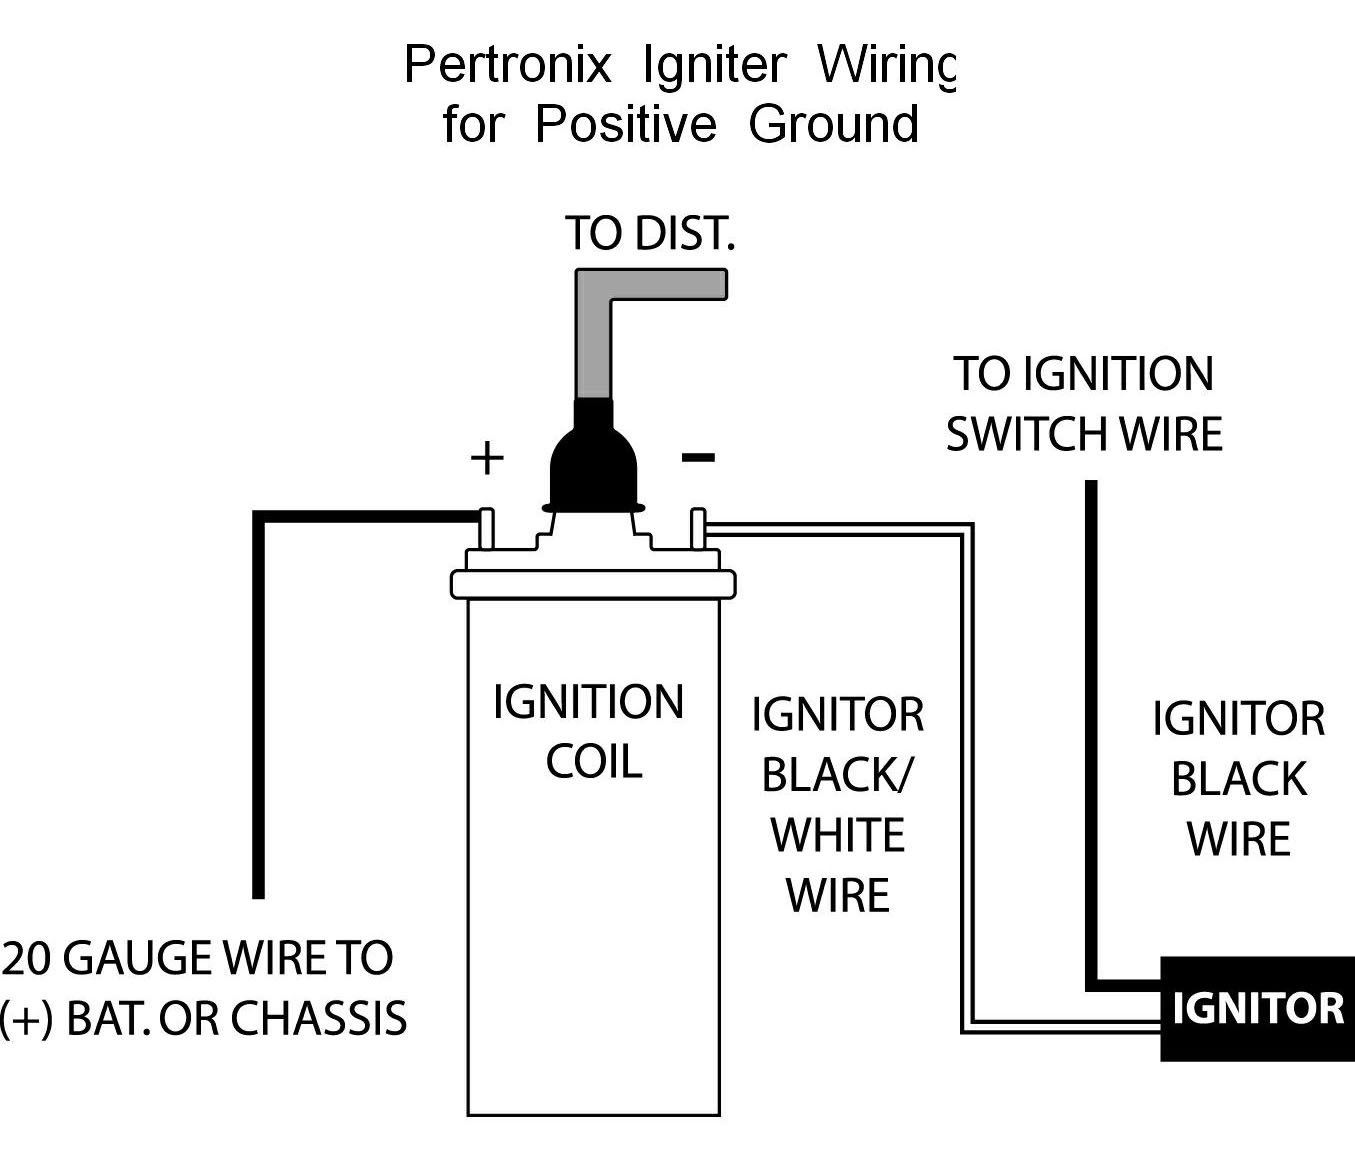 Wiring Diagram For Pertronix Ignition - Wiring Diagram Table on